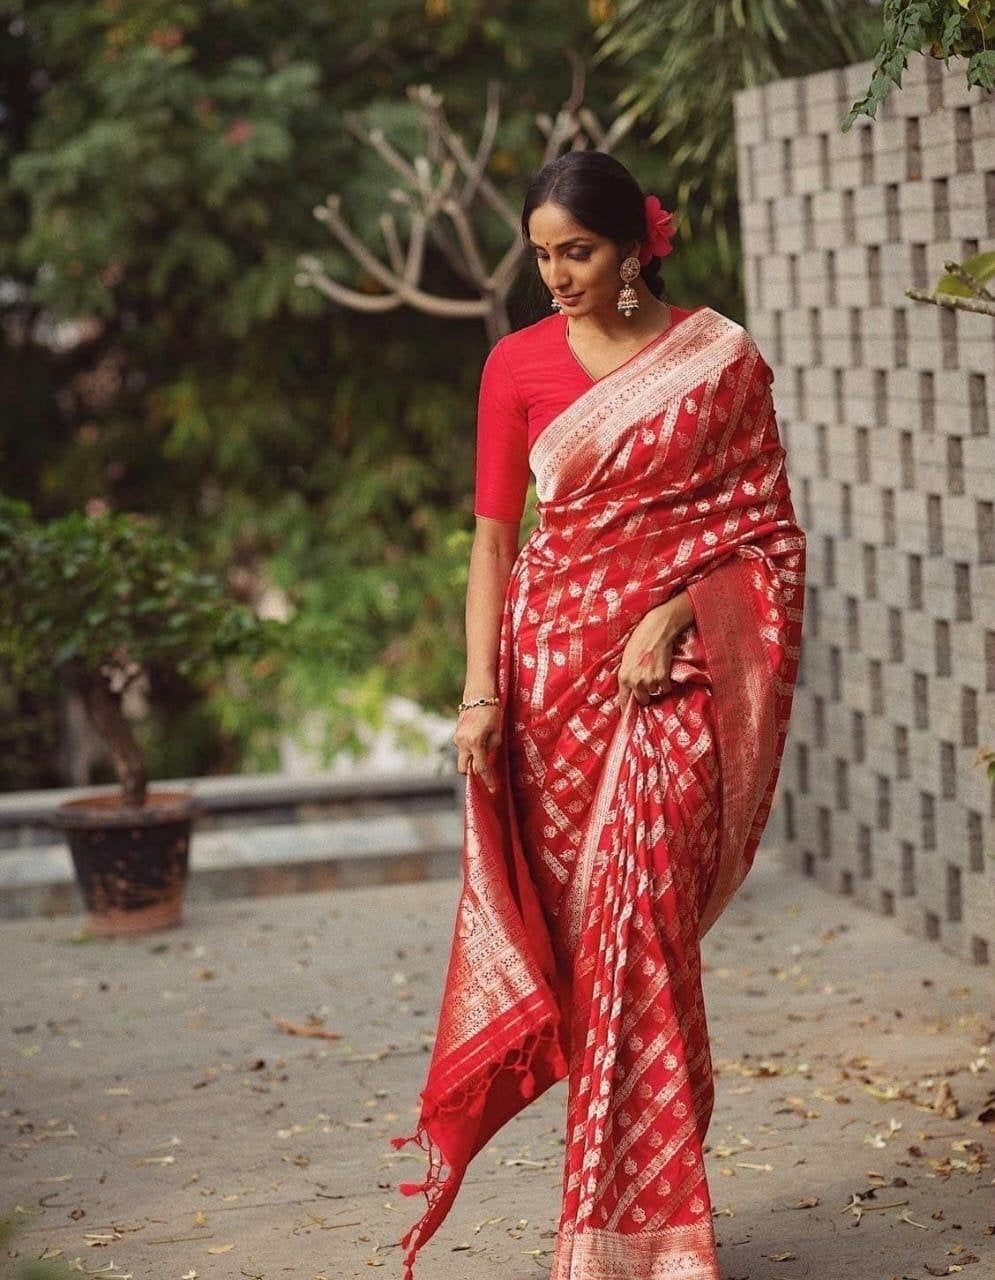 Soft Silk Saree Beautiful Rich Pallu Jacquard Work On All Over Saree Jacquard Border On Blouse for Traditional Marriage Formal Look